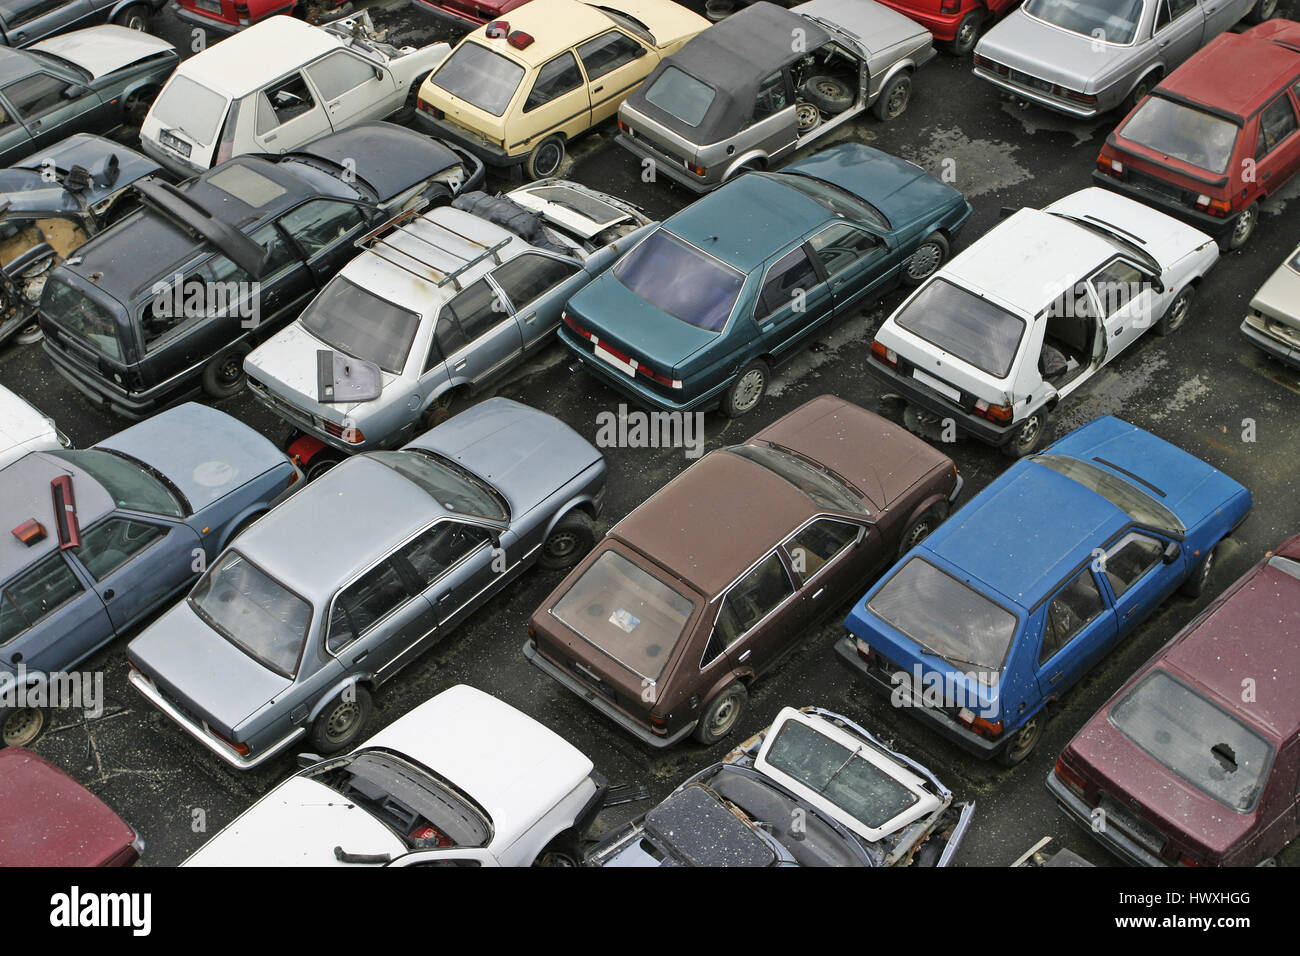 Scrap Car Recycle Yard with lots of old crushed cars Stock Photo ...